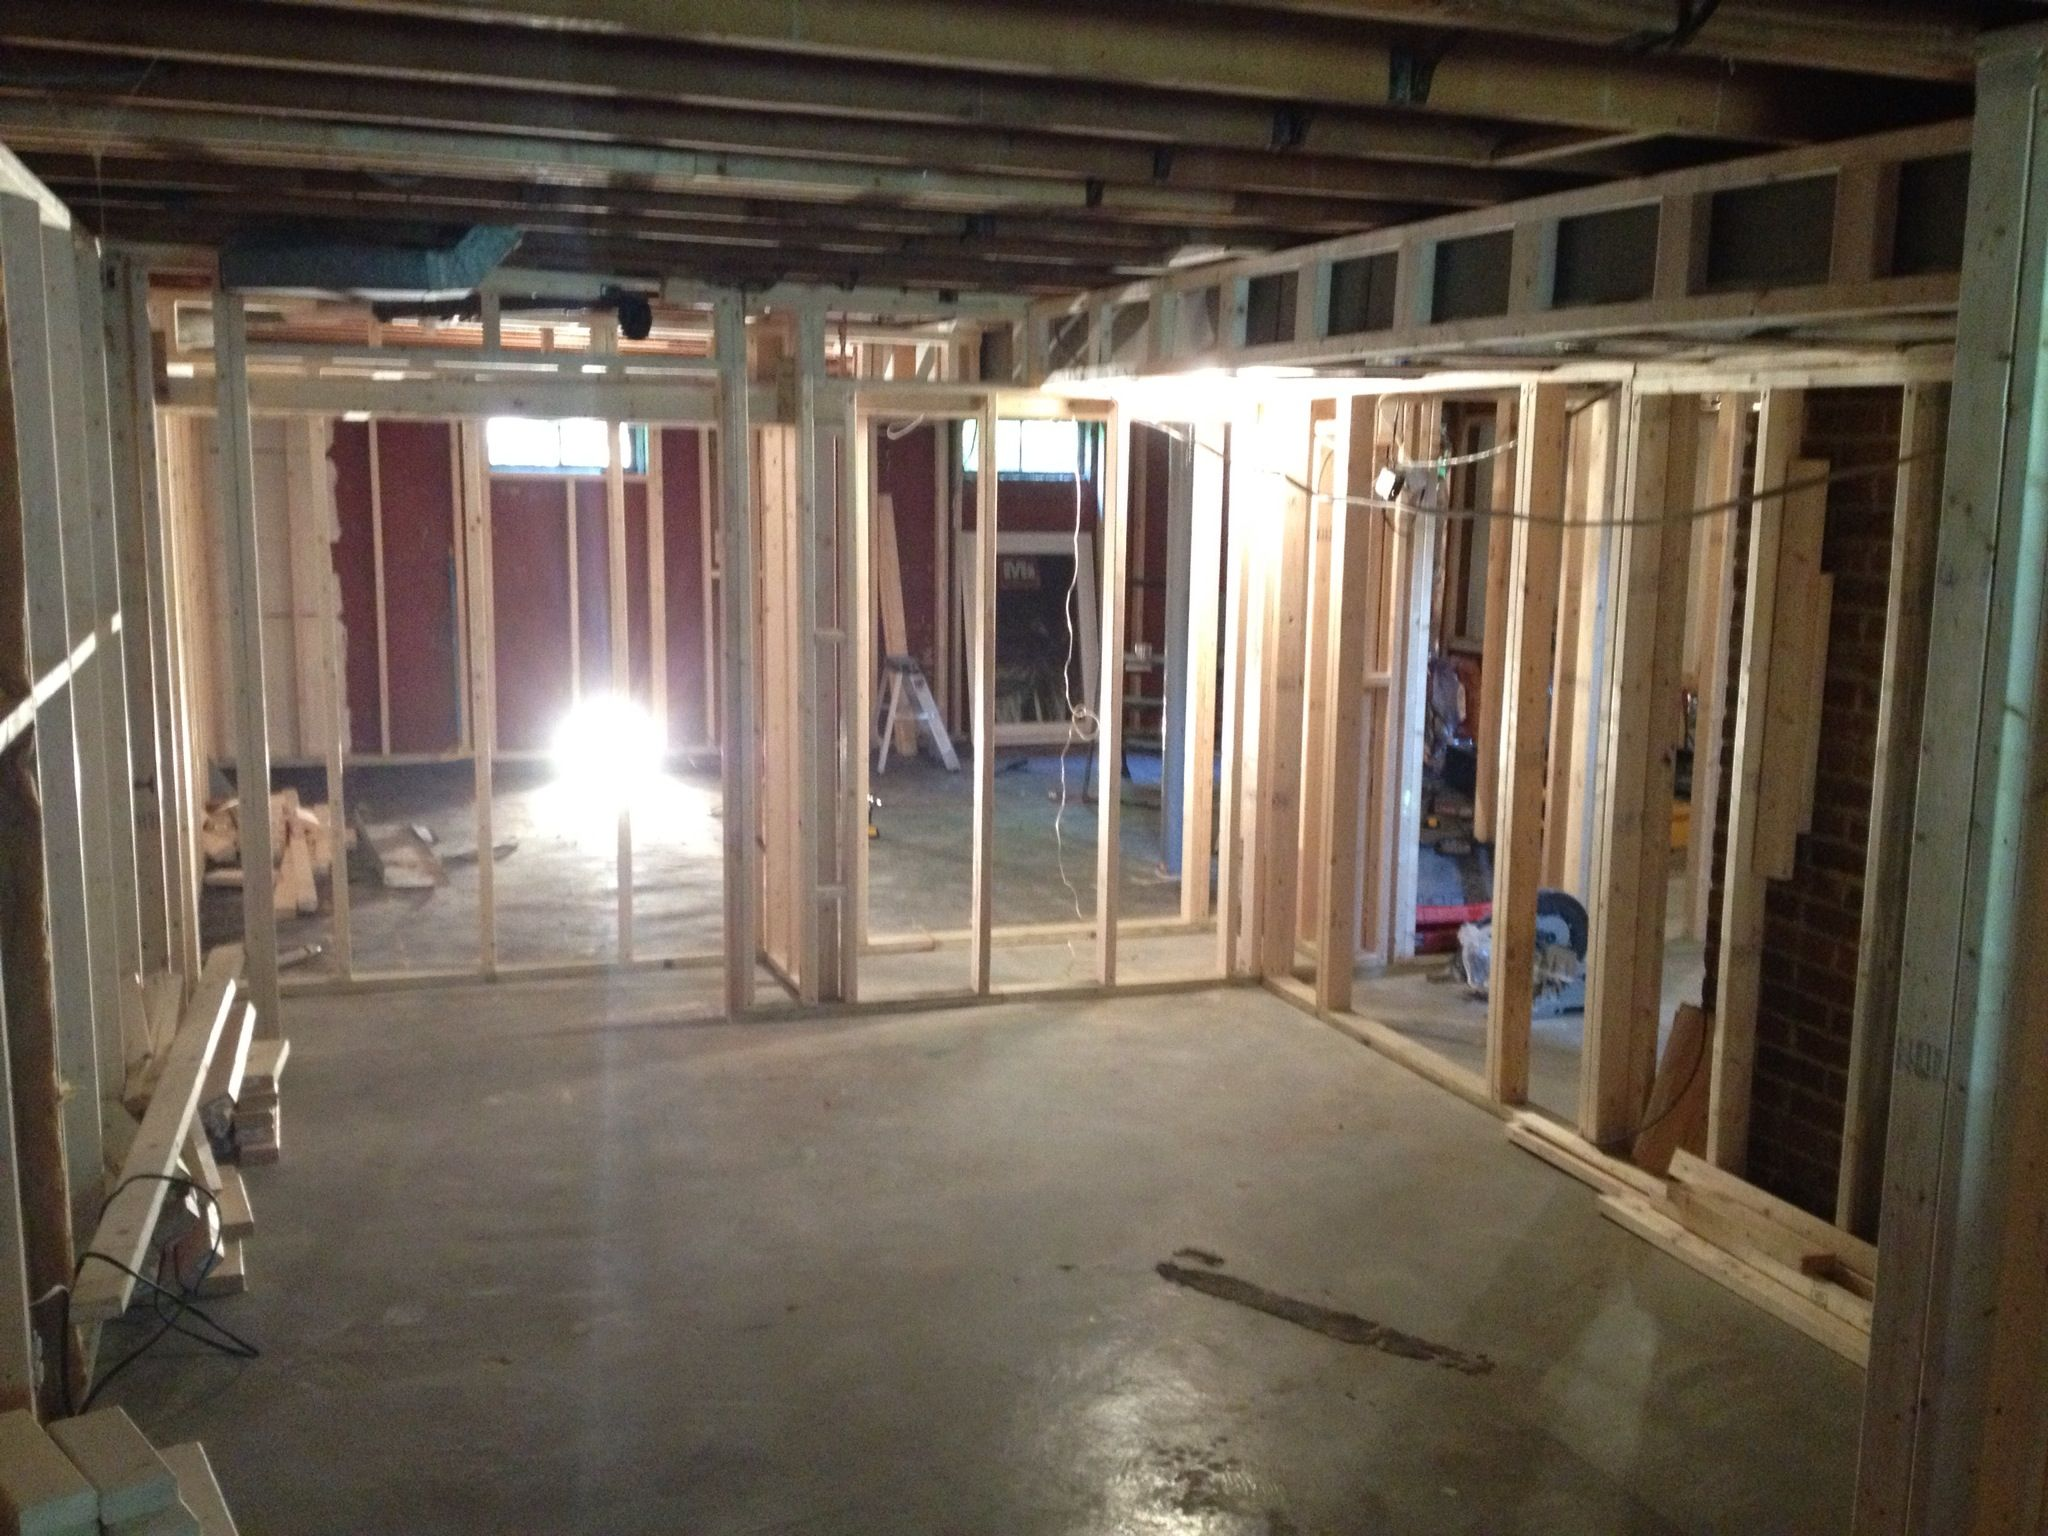 Partial Basement Framing 2 New Large Bedrooms W Small Walk Ins Gym Intended Home Theater Section Not Pictured Home Theater Design Home Theater Home